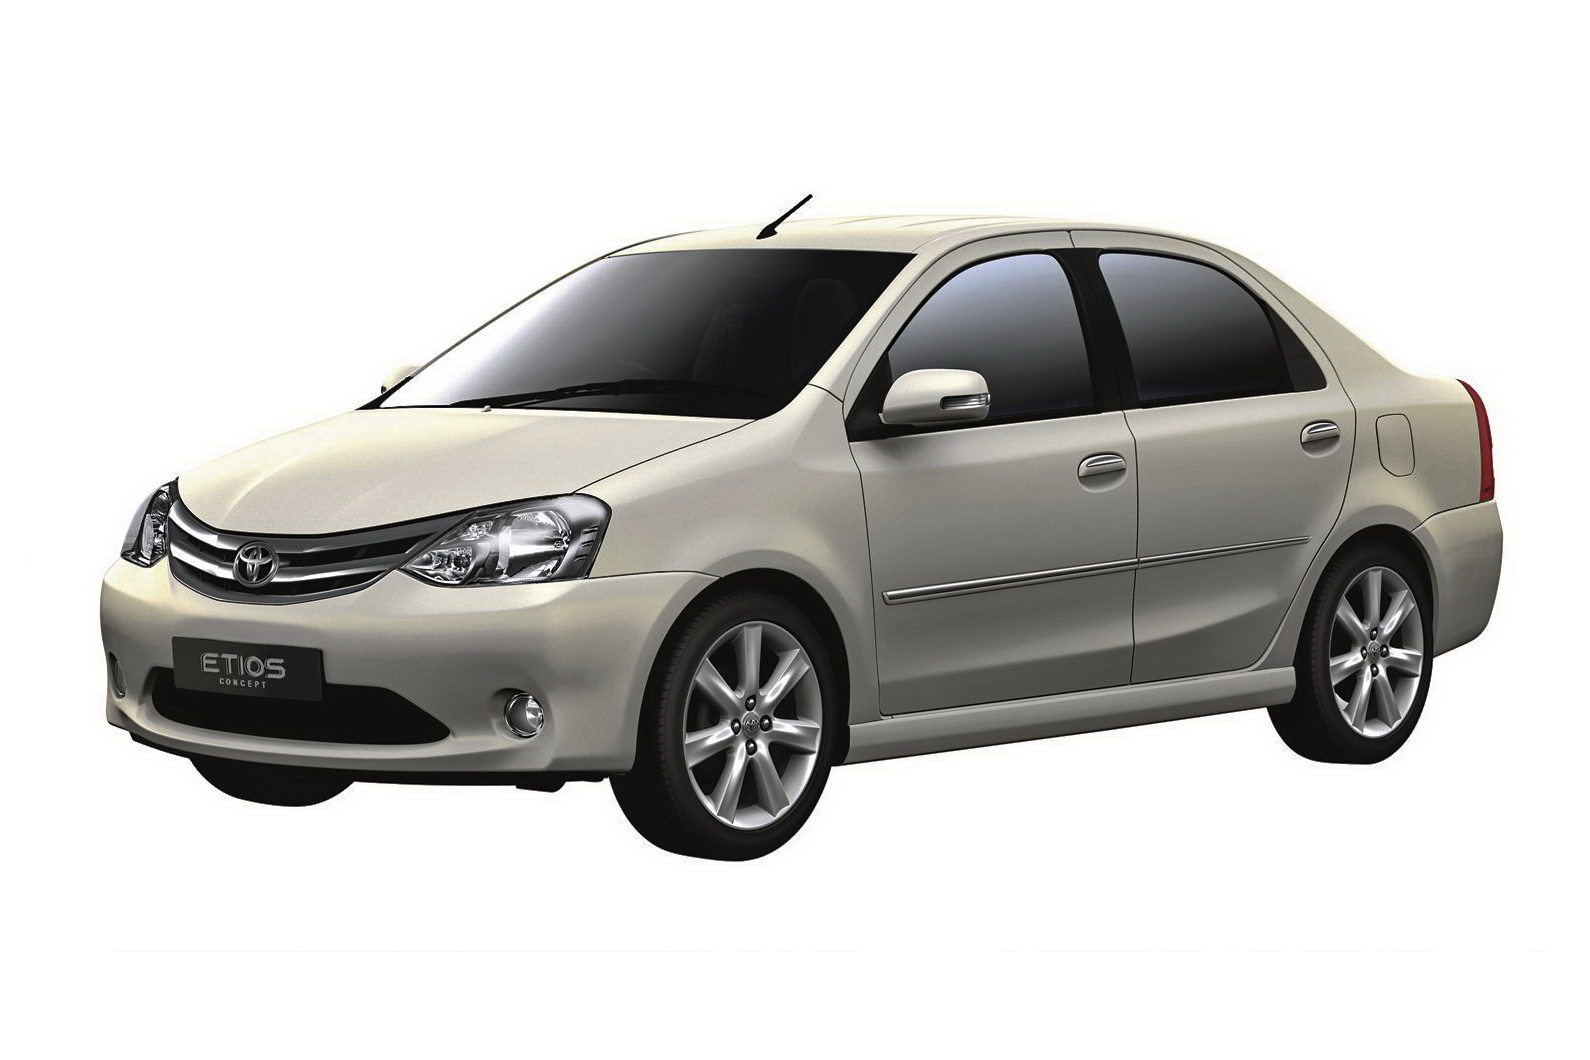 Toyota Etios Car Hire